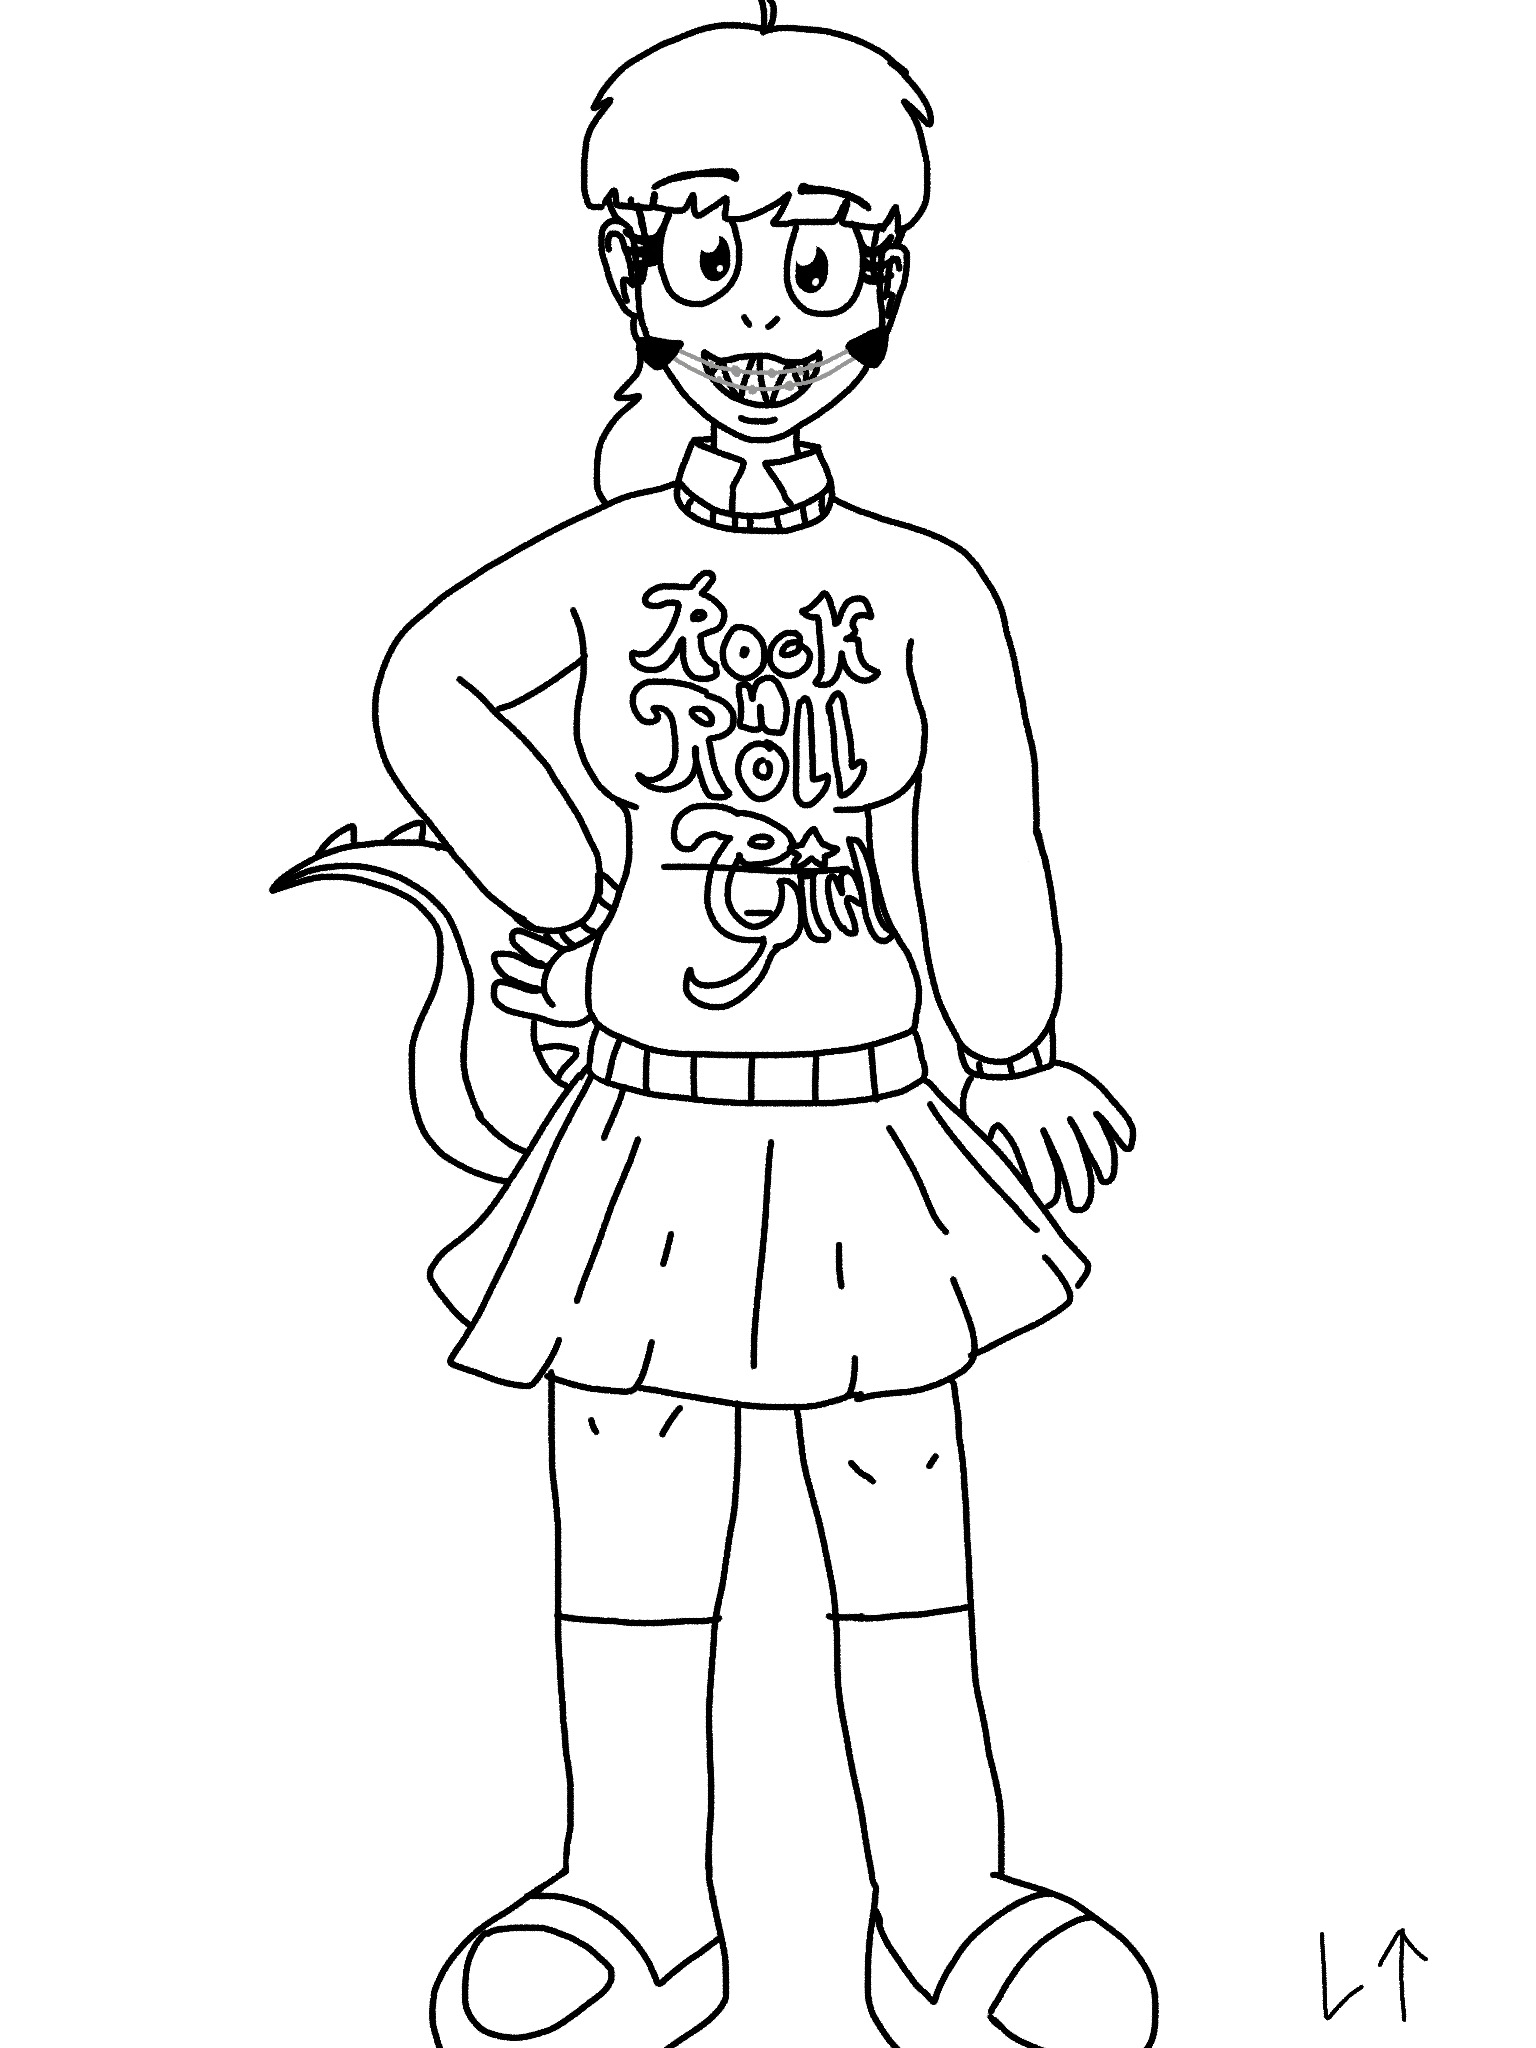 Arthur as Darla aka Audrey (Lineart) (Uncolored) by Rainbow-Dash-Rockz